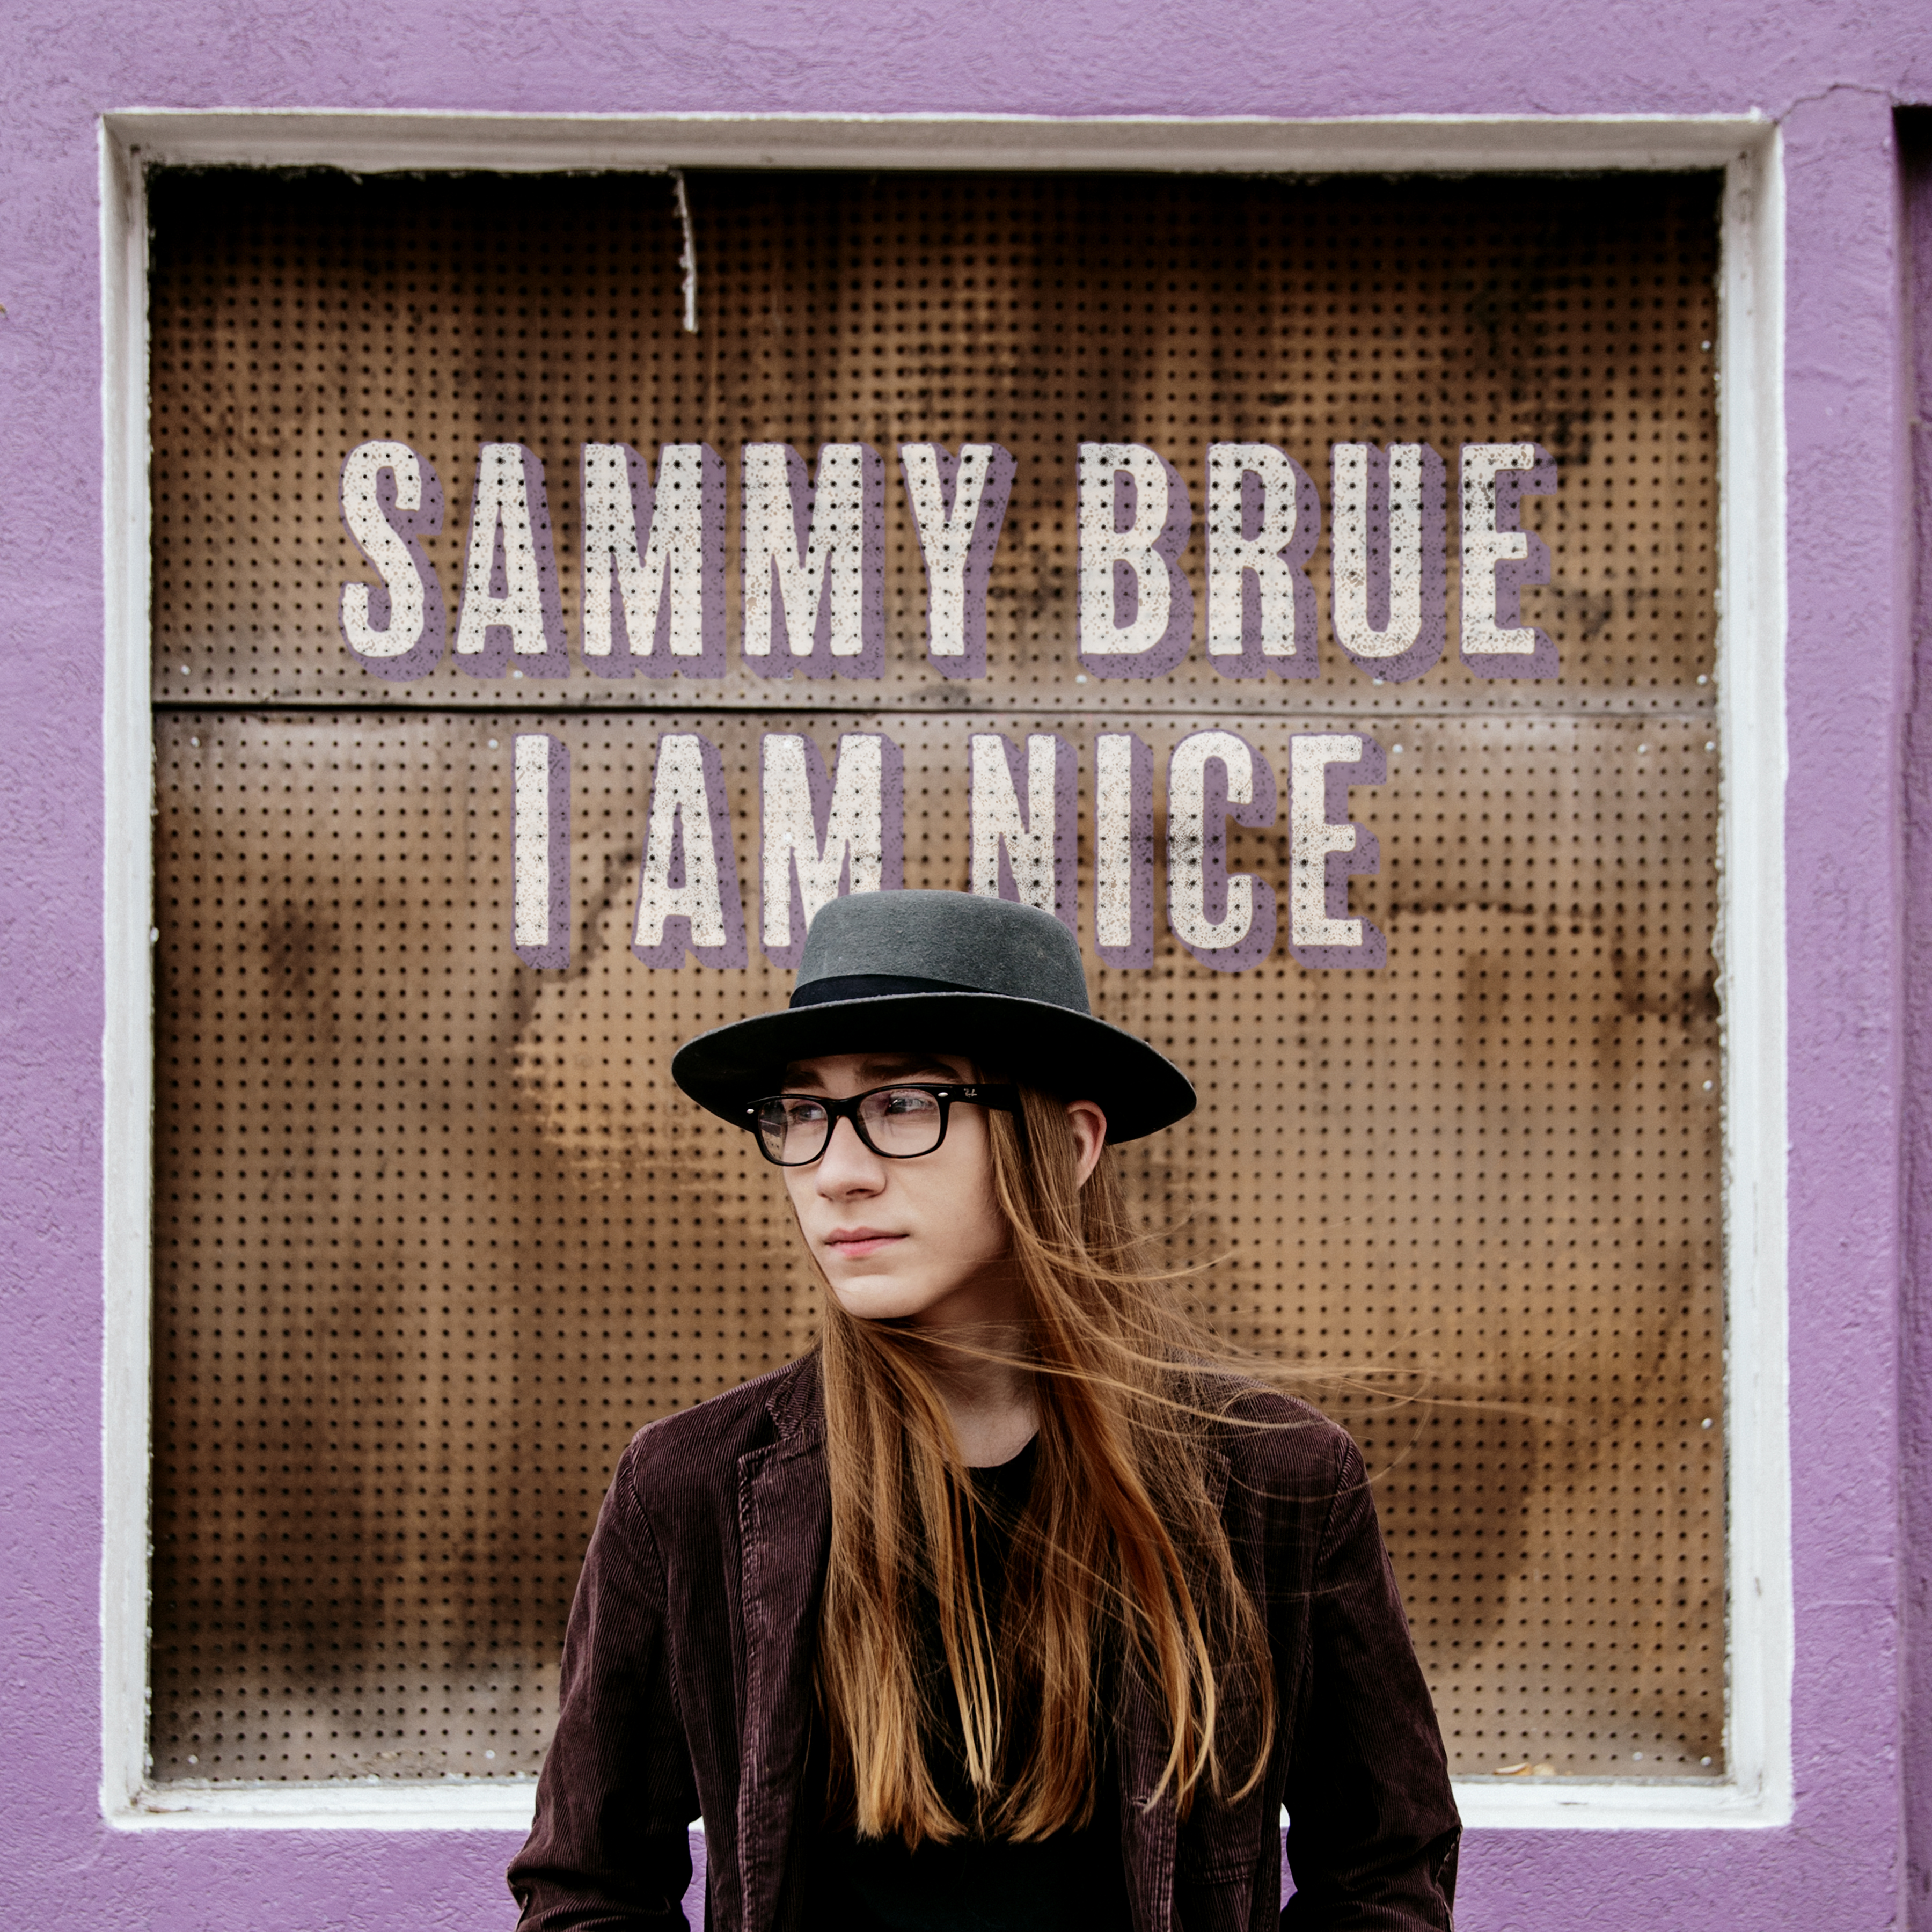 I Am Nice: Sammy Brue's Debut Album & Interview